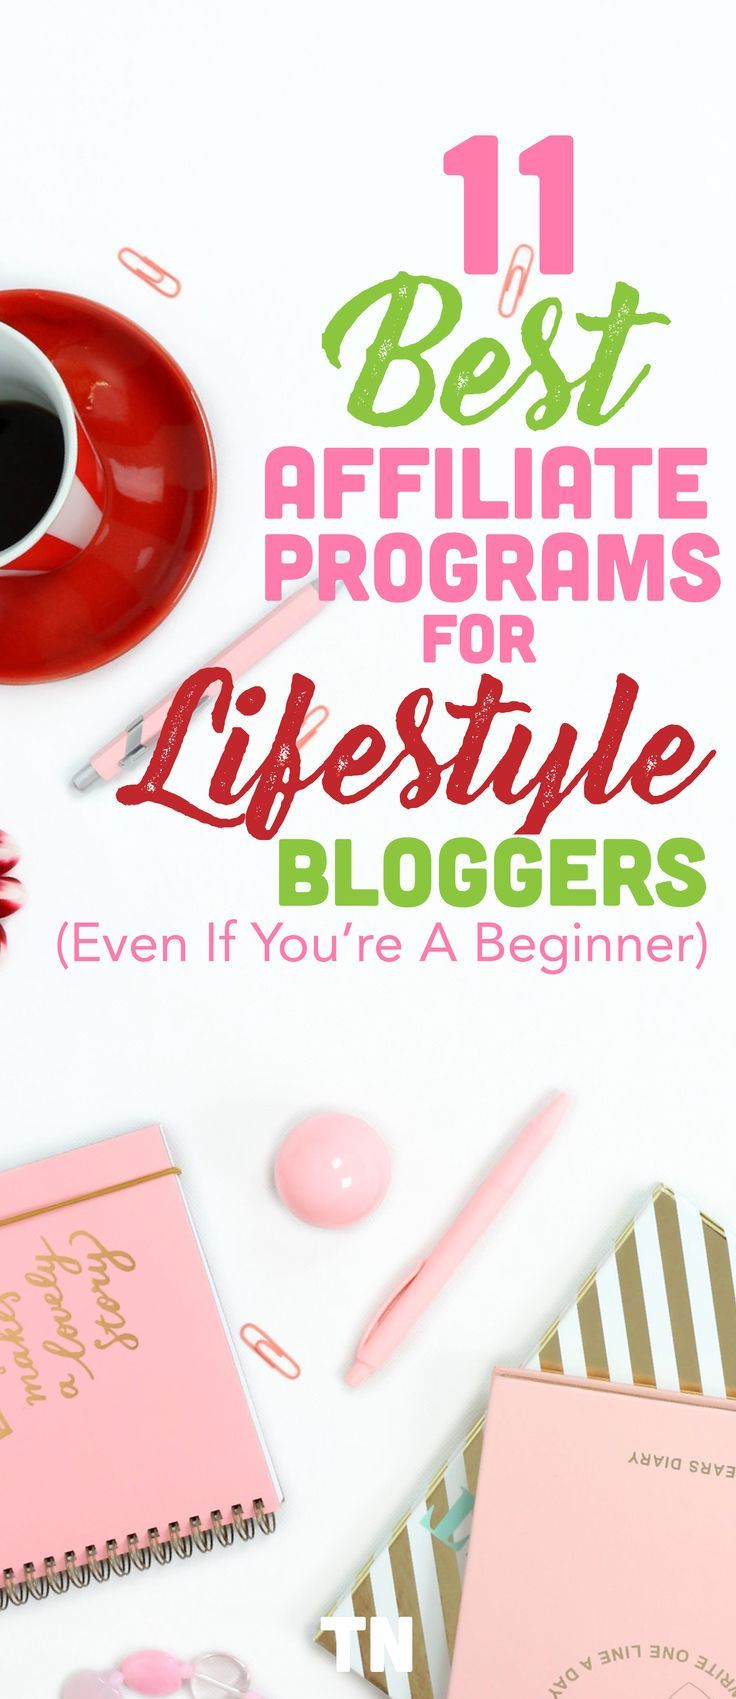 9+ Useful Affiliate Programs For Lifestyle Bloggers To Increase Their Income | Affiliate Marketing For Beginners | Affiliate marketing on Pinterest | Affiliate Marketing Without A Blog | Amazon | Passive Income | http://wealthabundance.net/more-than-one-way-to-wealth-on-clickbank/